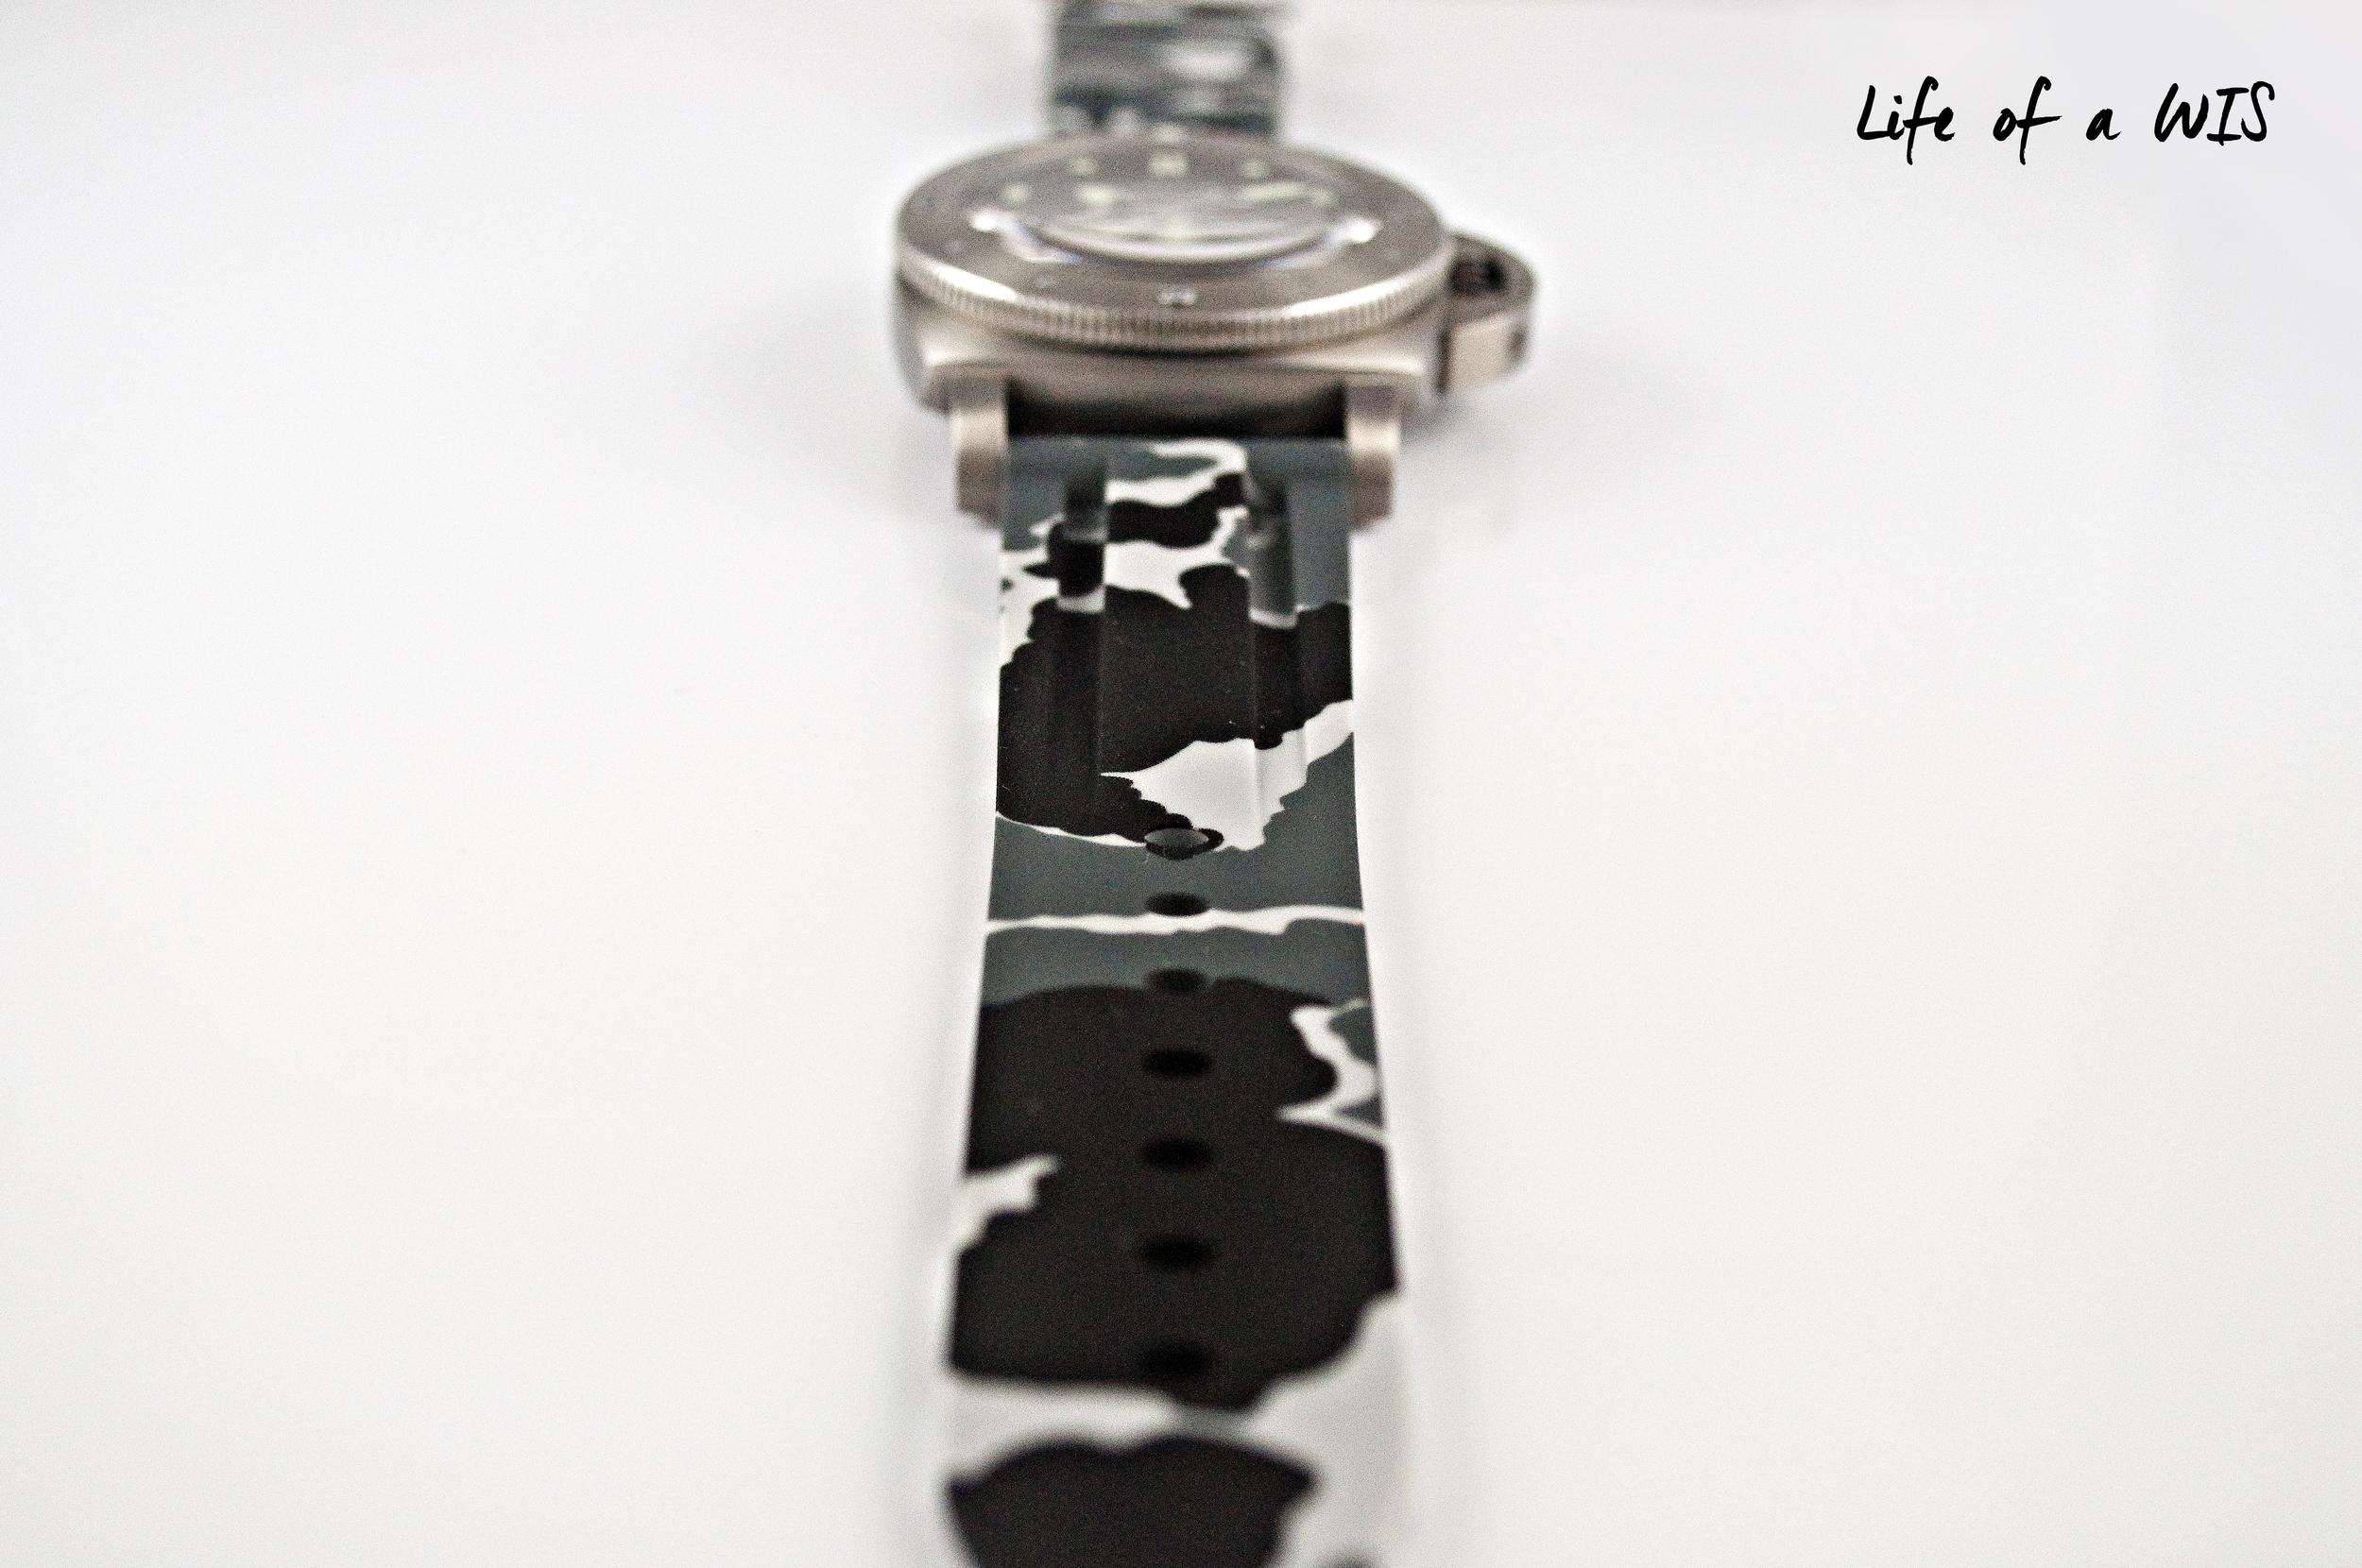 Every strap features a unique camo pattern.